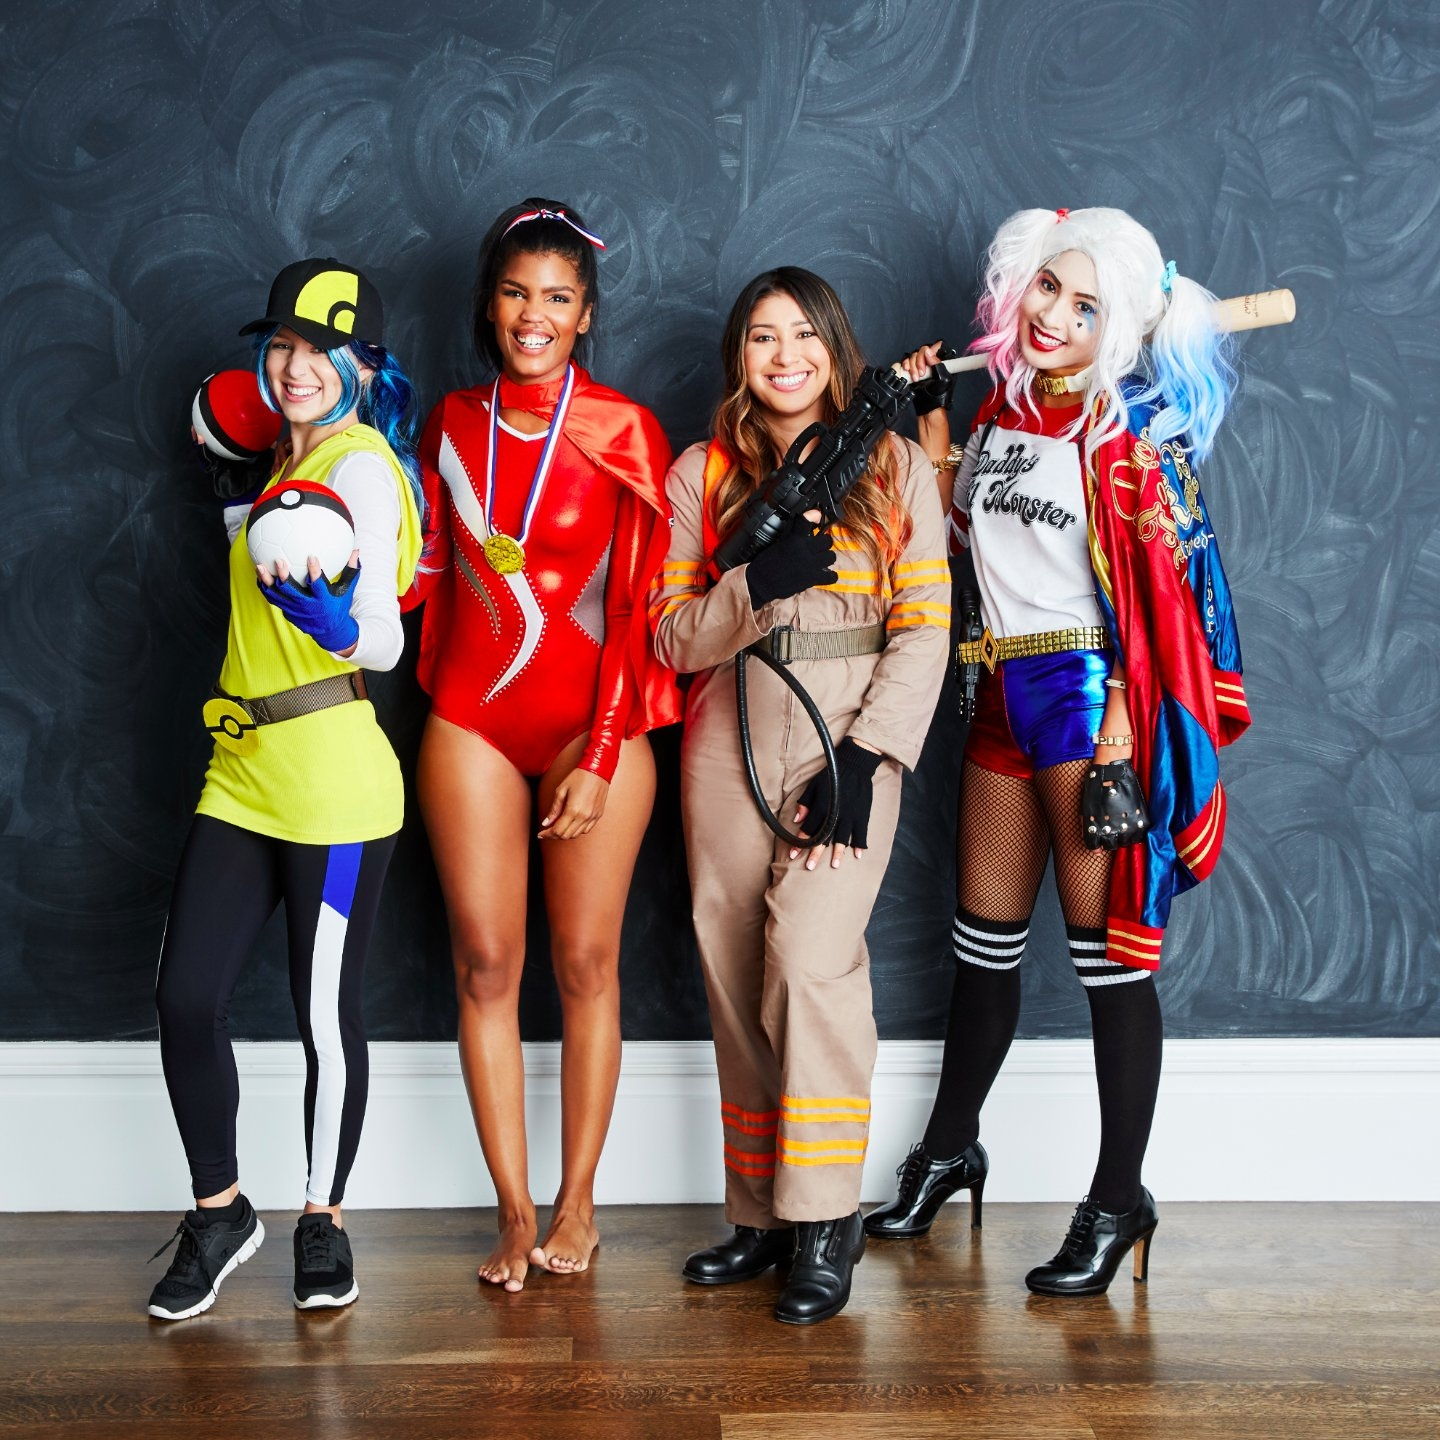 10 Perfect Good Costume Ideas For Groups most popular halloween costumes of 2016 popsugar celebrity 1 2020